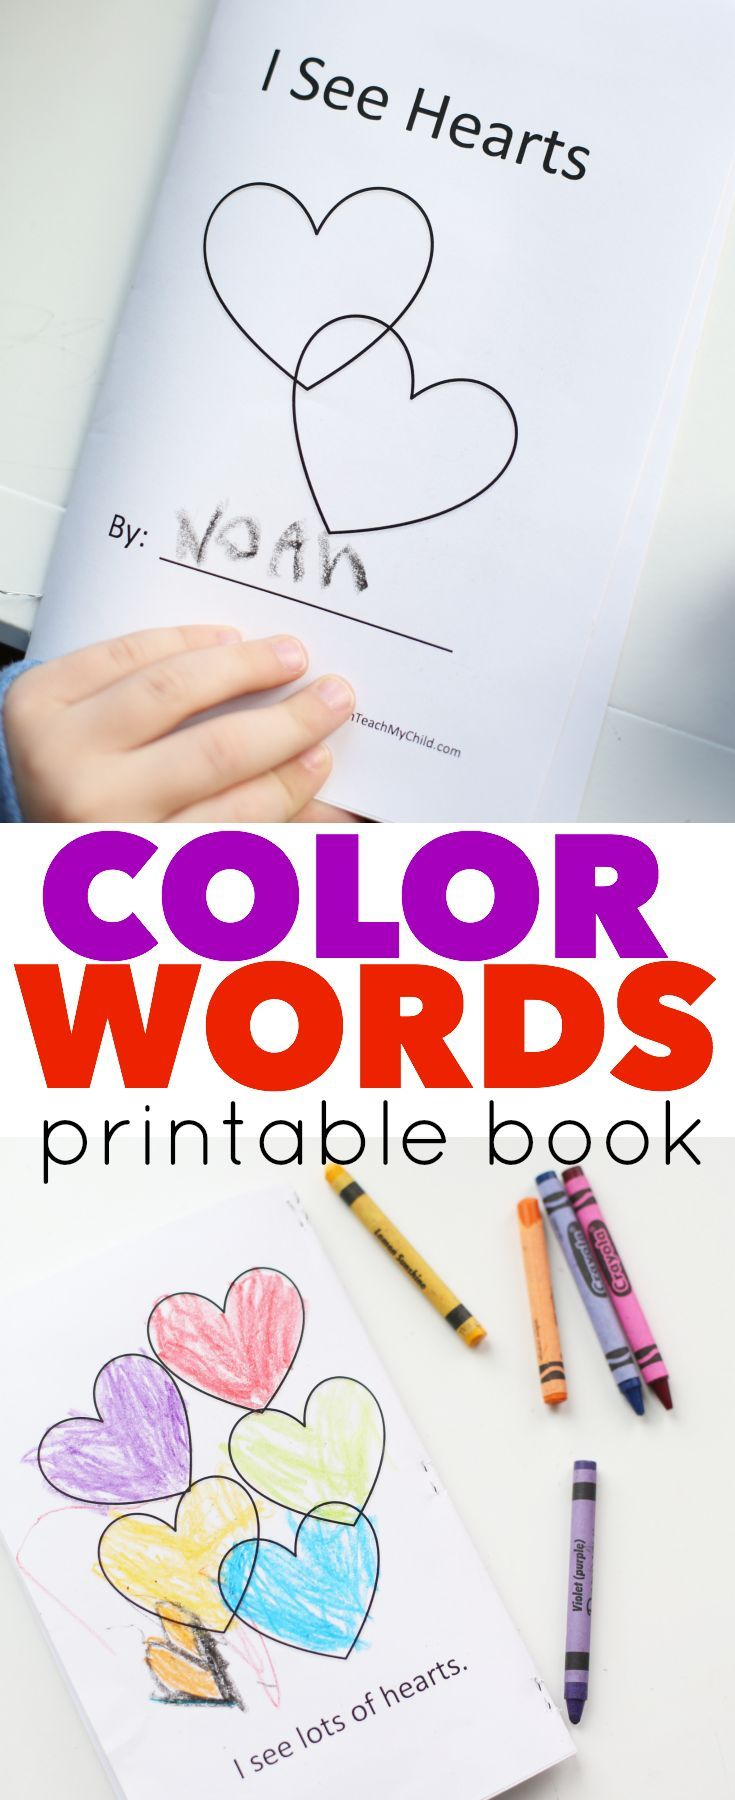 Printable Color Words book for Valentines Day using the sight words I, see, a, and an.  Perfect for beginning readers!